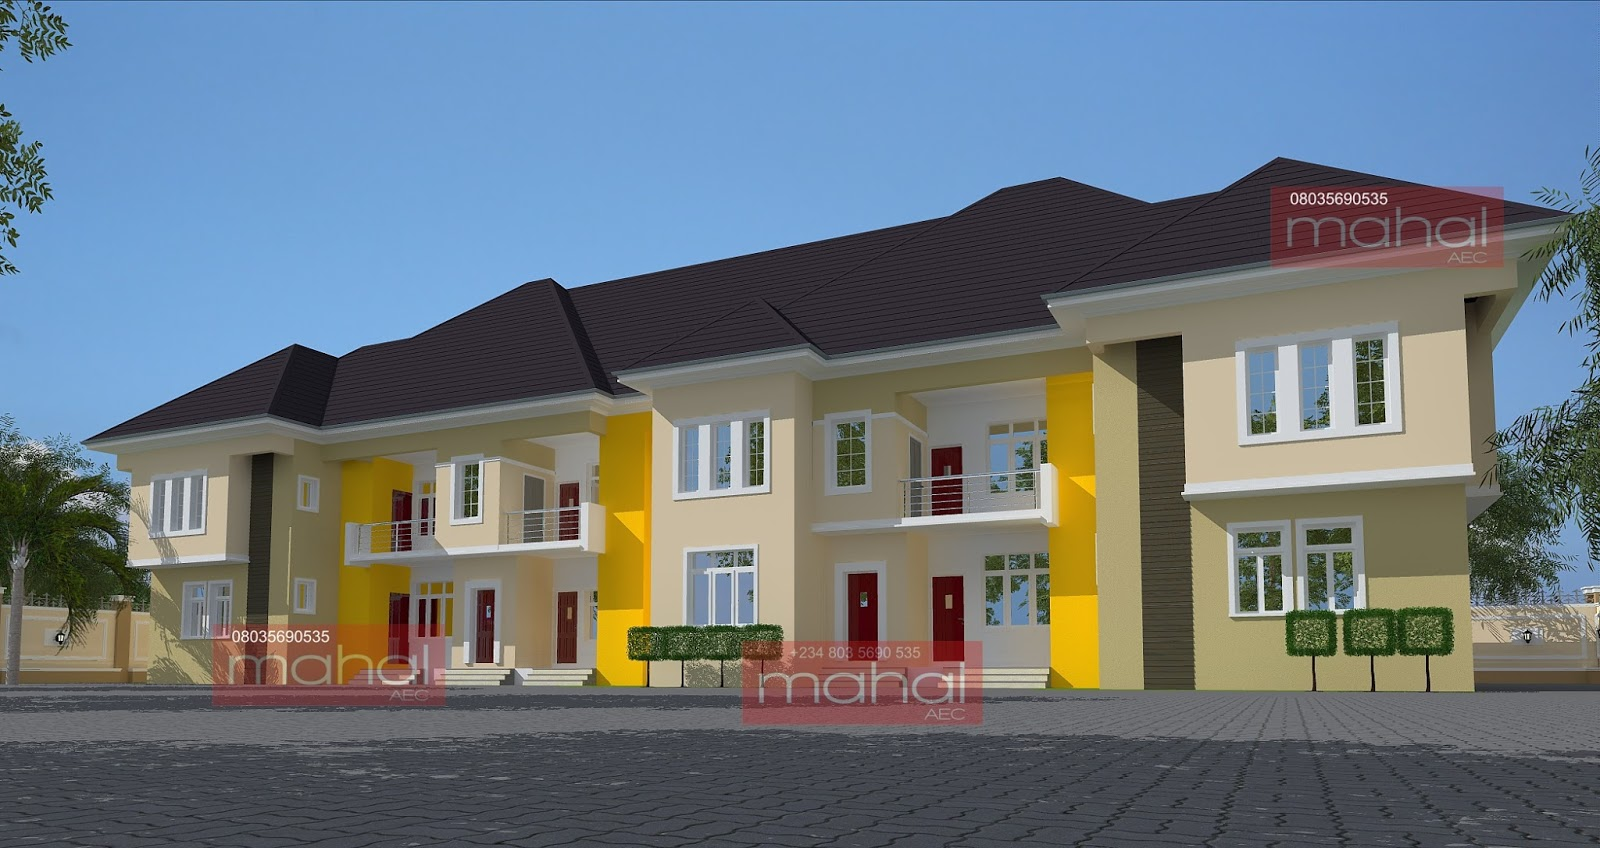 Contemporary nigerian residential architecture olotu house for Nigerian architectural designs